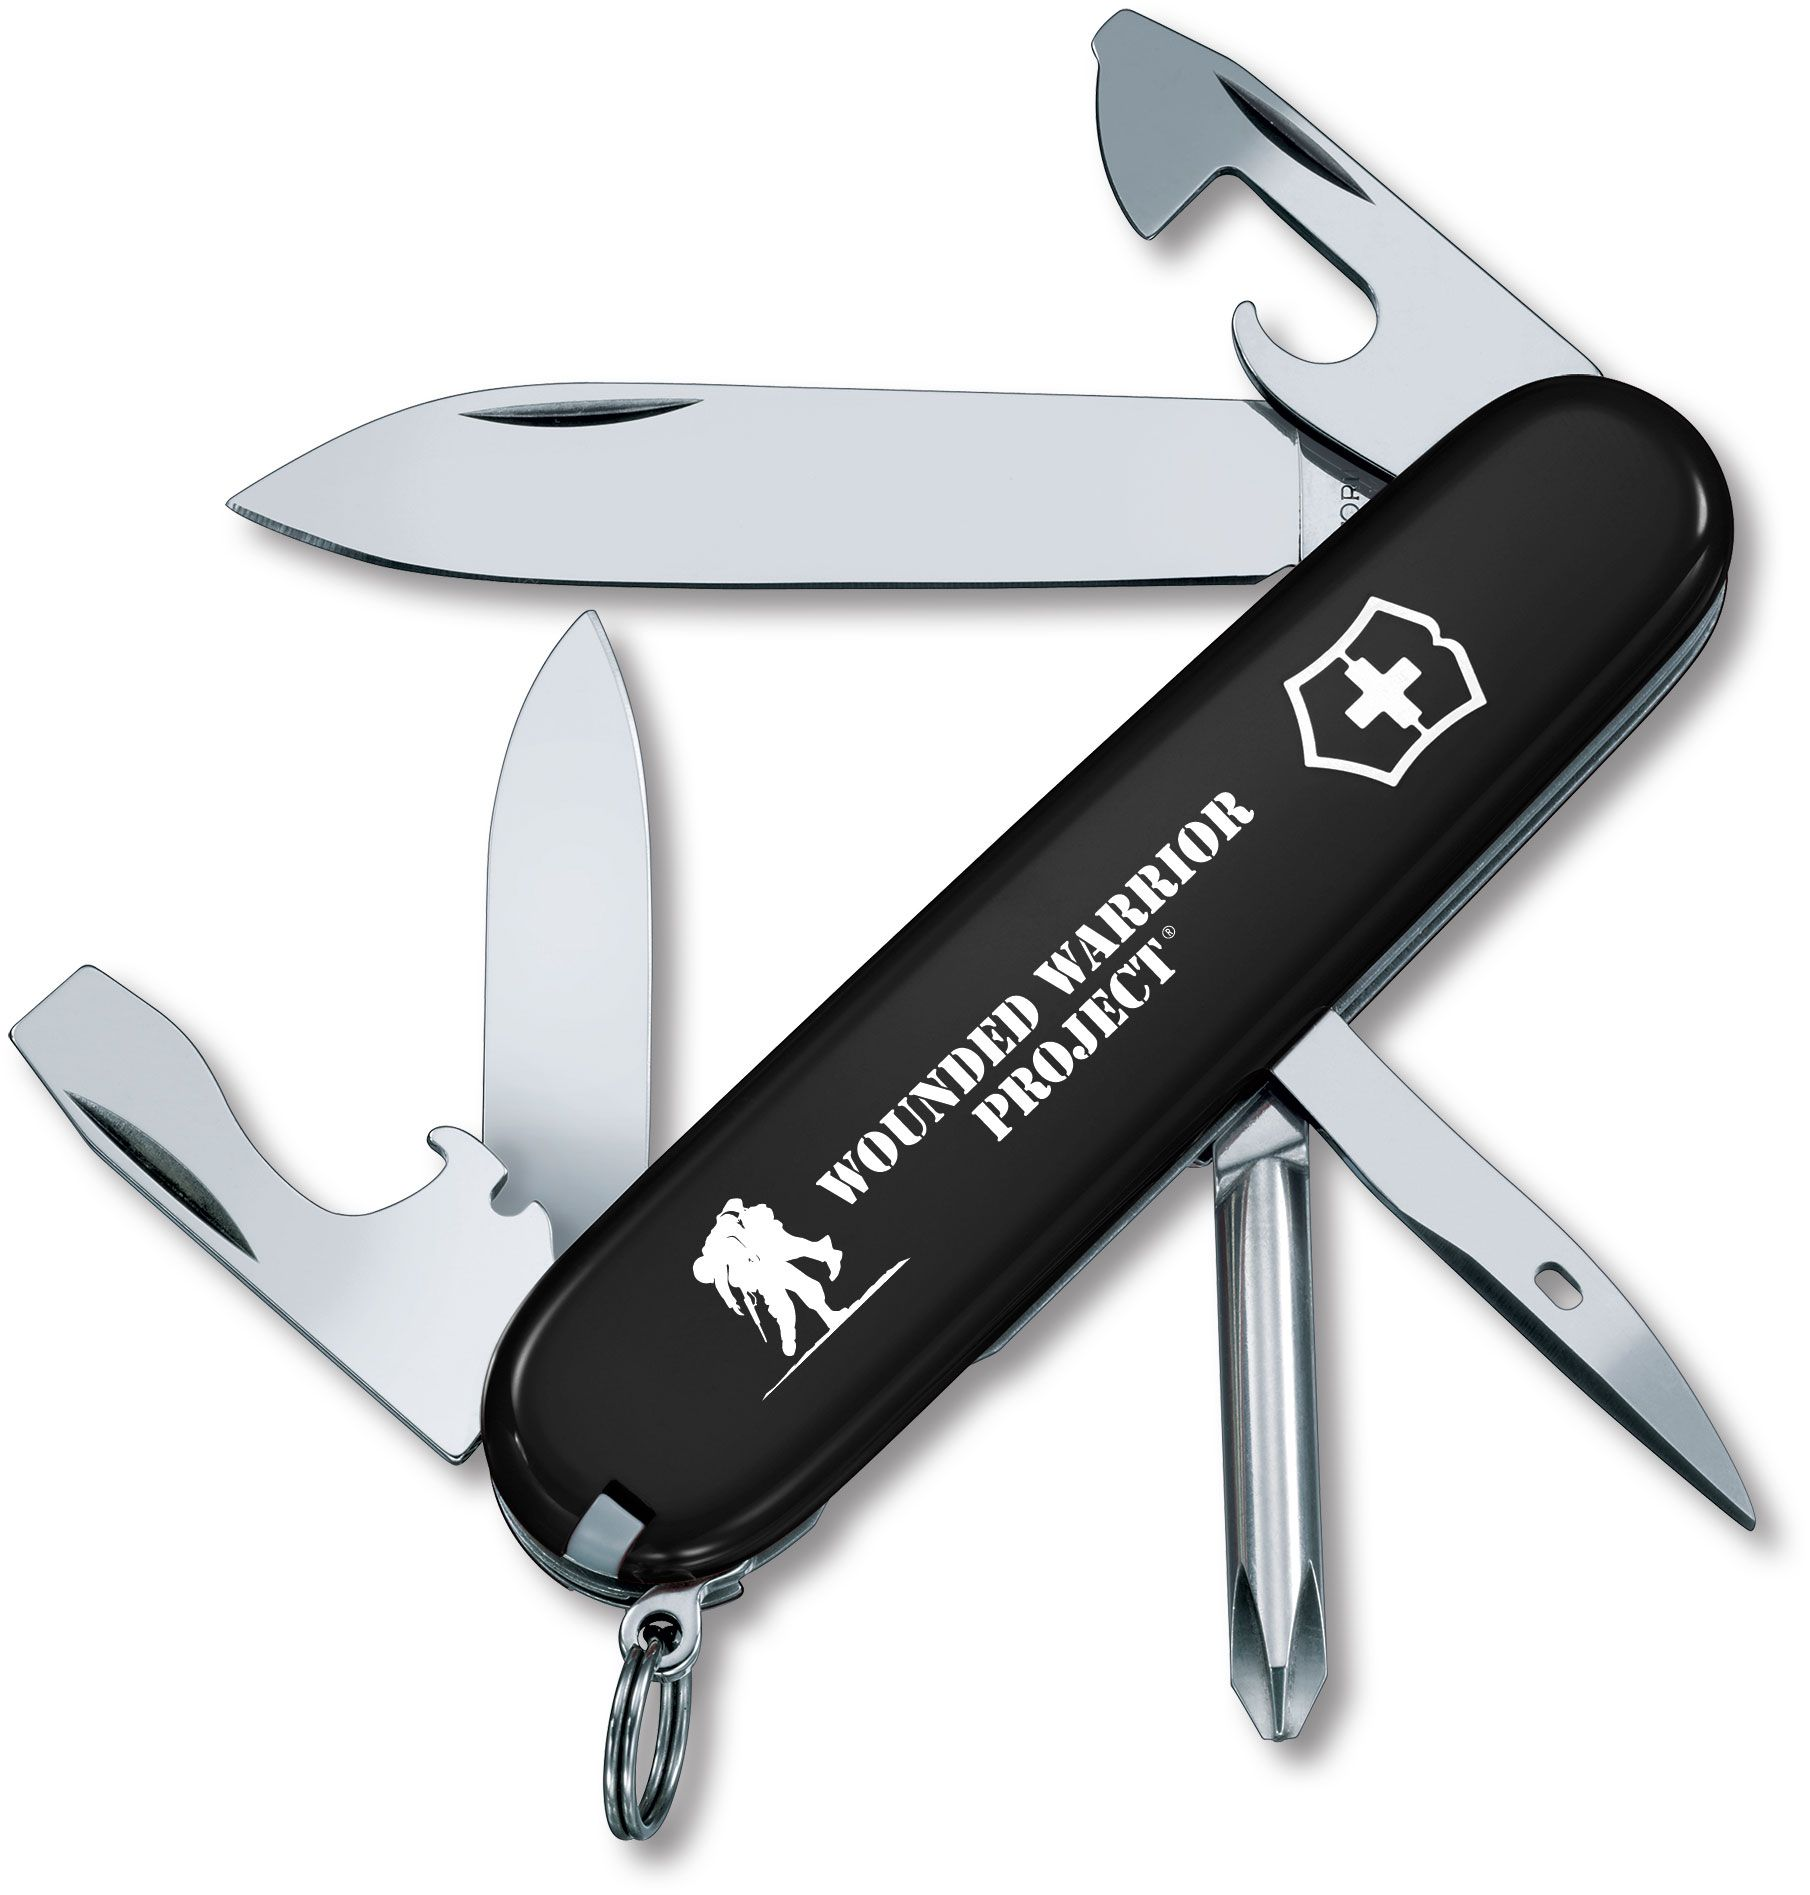 Victorinox Swiss Army Wounded Warrior Project Tinker Multi-Tool, Black, 3.58 inch Closed